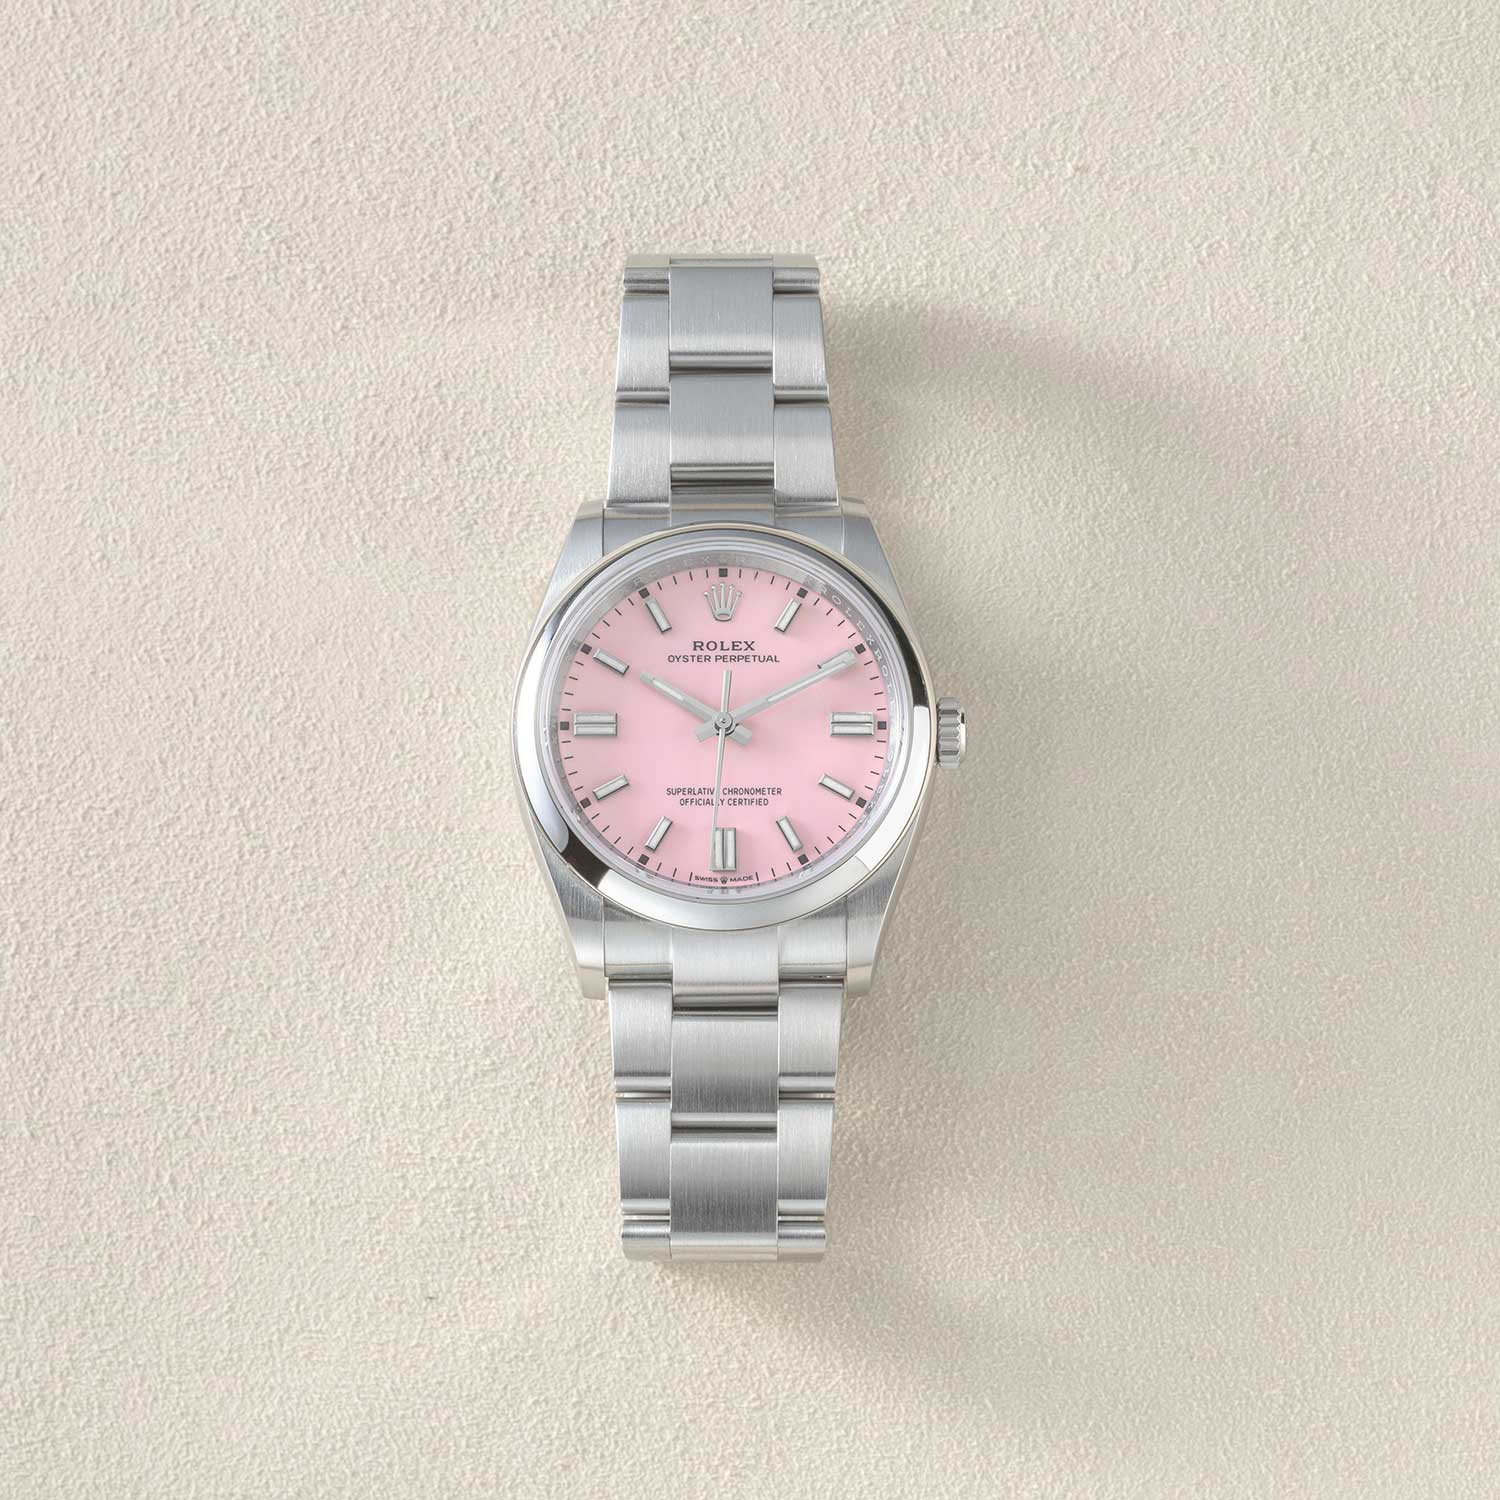 The 36mm 2020 Rolex Oyster Perpetual seen here with the candy pink dial (©Revolution)